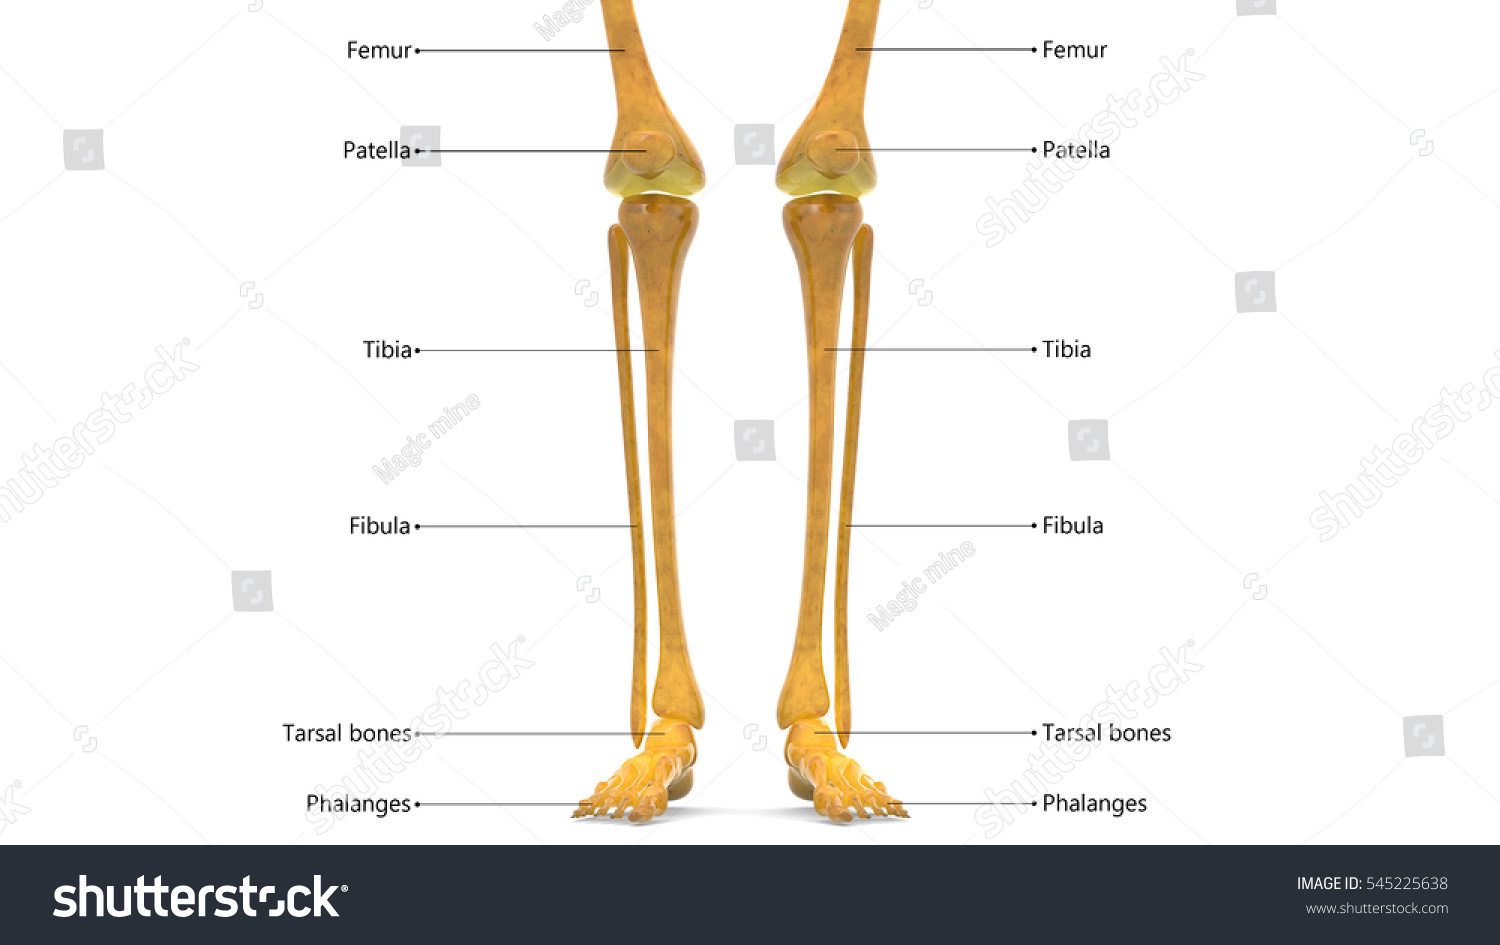 Human Skeleton Leg Joints Anatomy Femur Stock Illustration Royalty